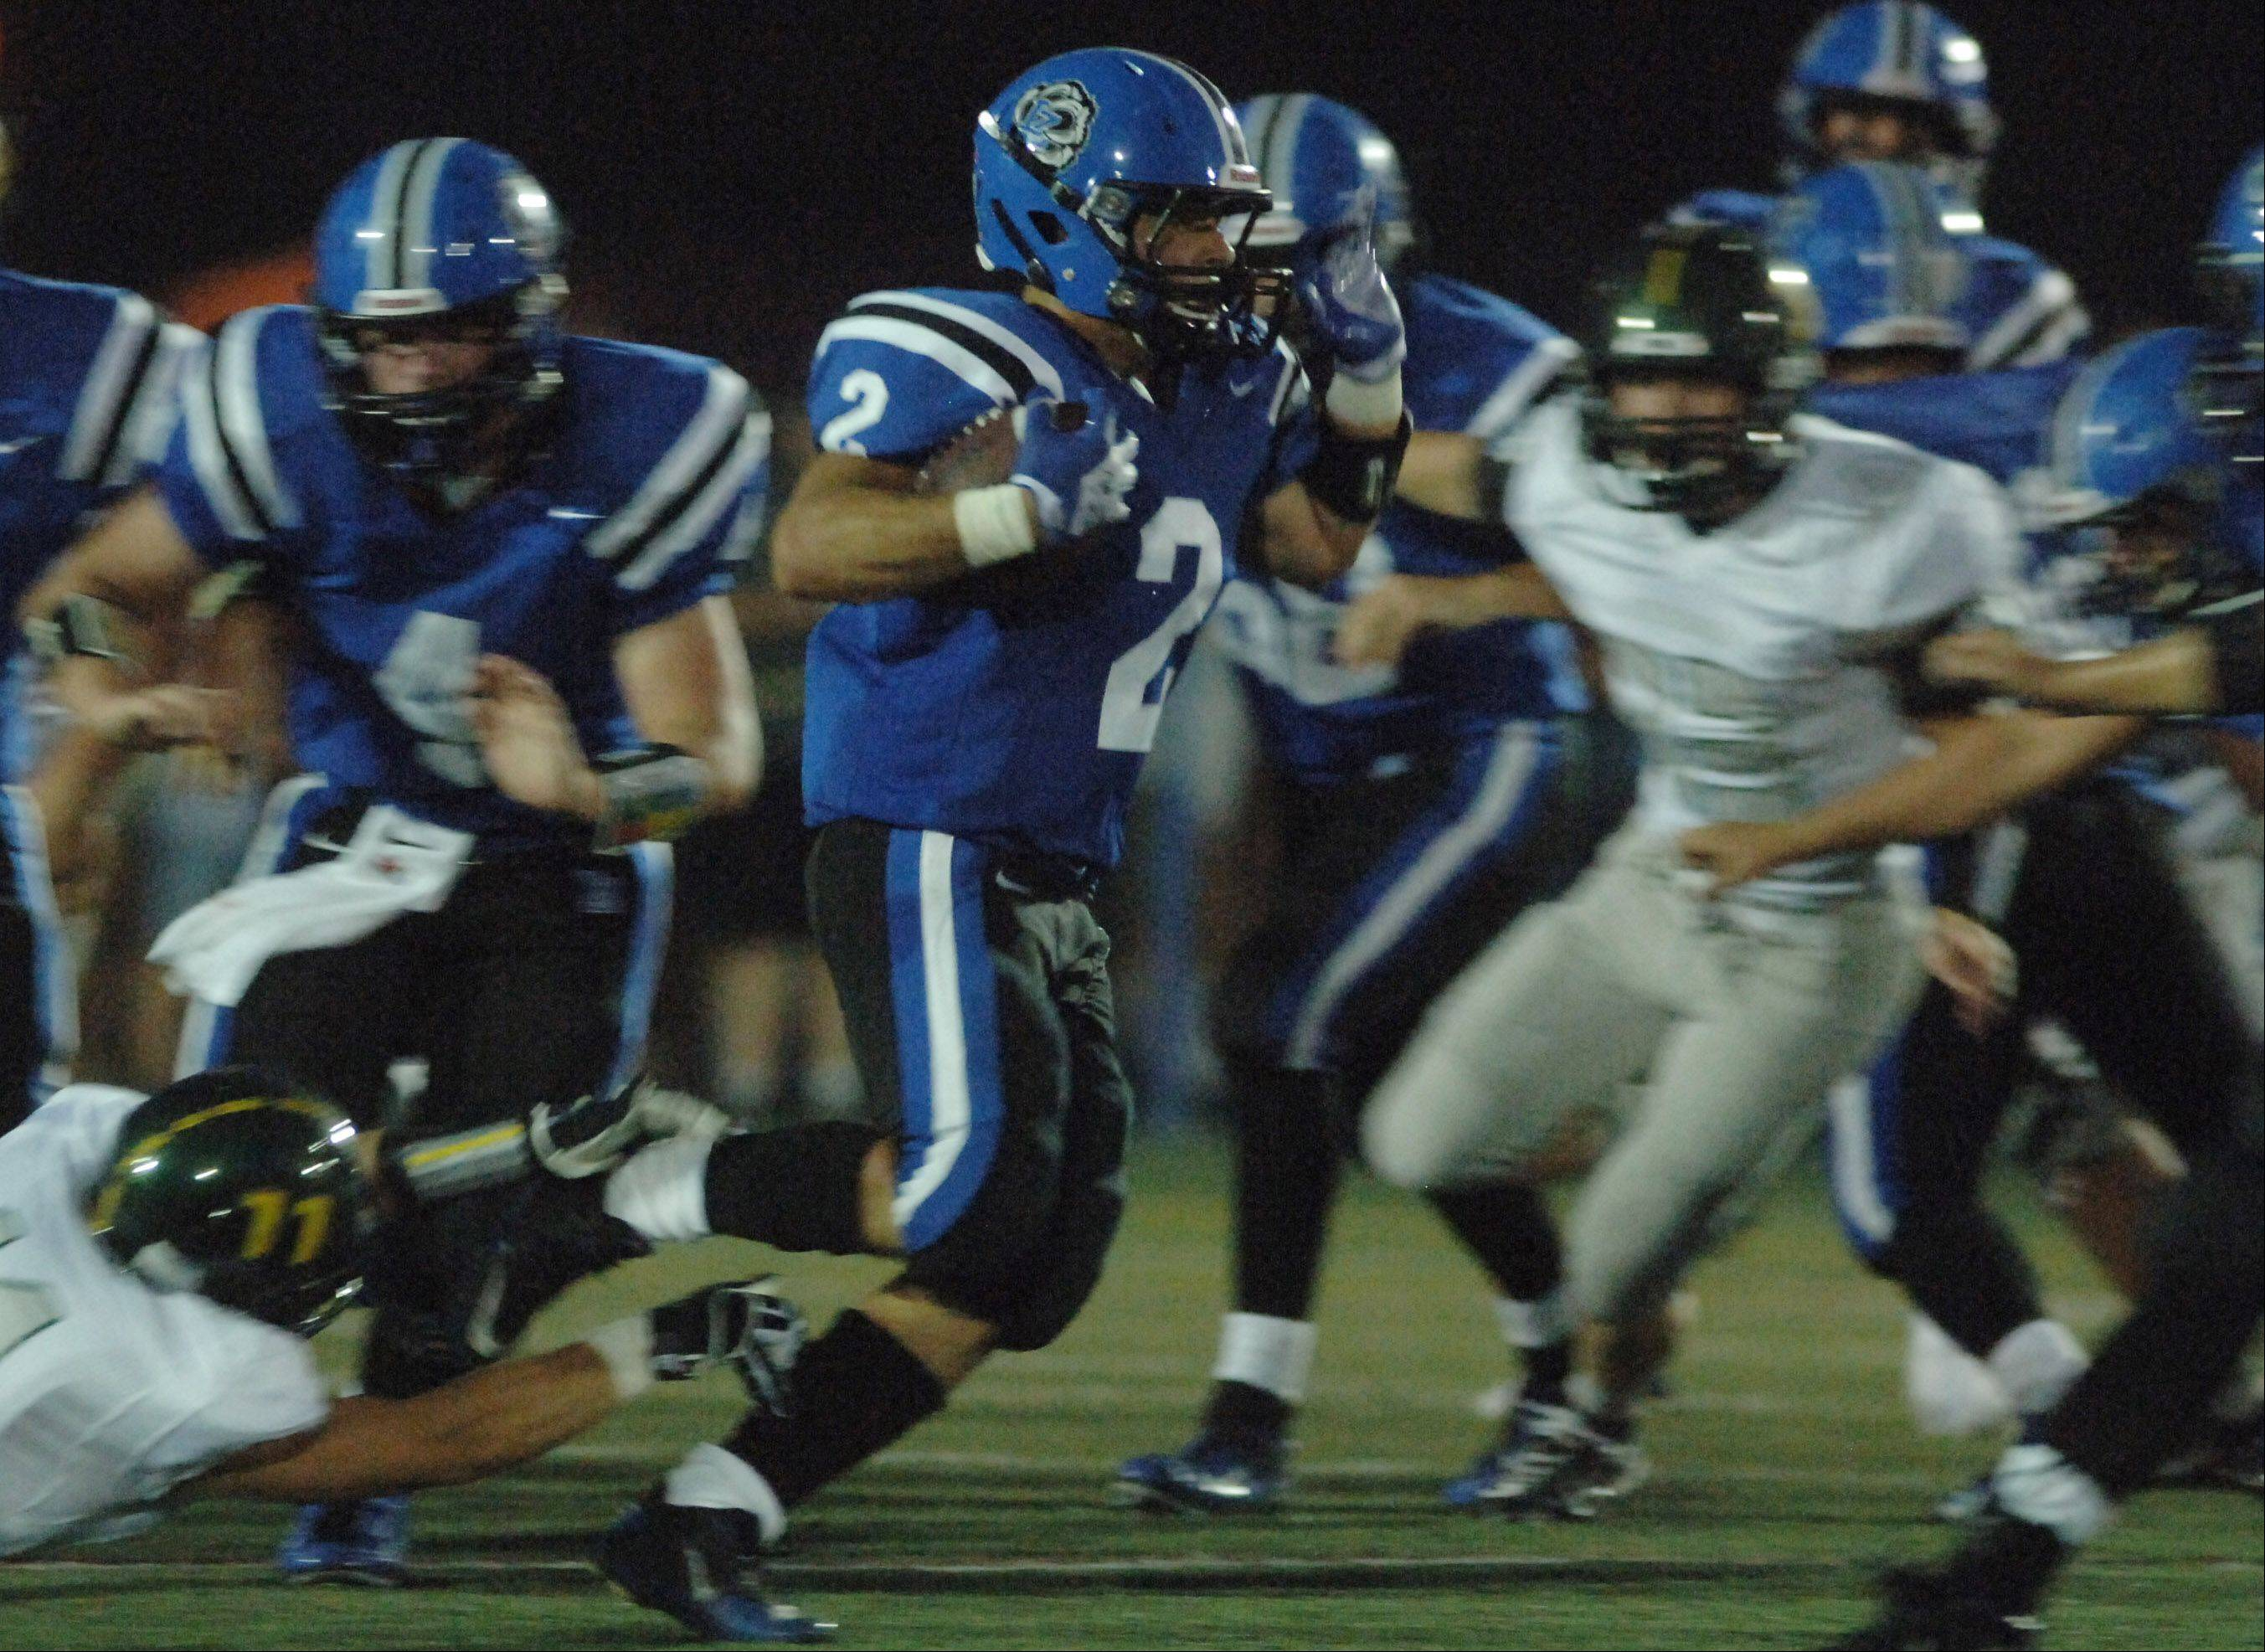 Lake Zurich's Kody Schaar gets some running room against Fremd .